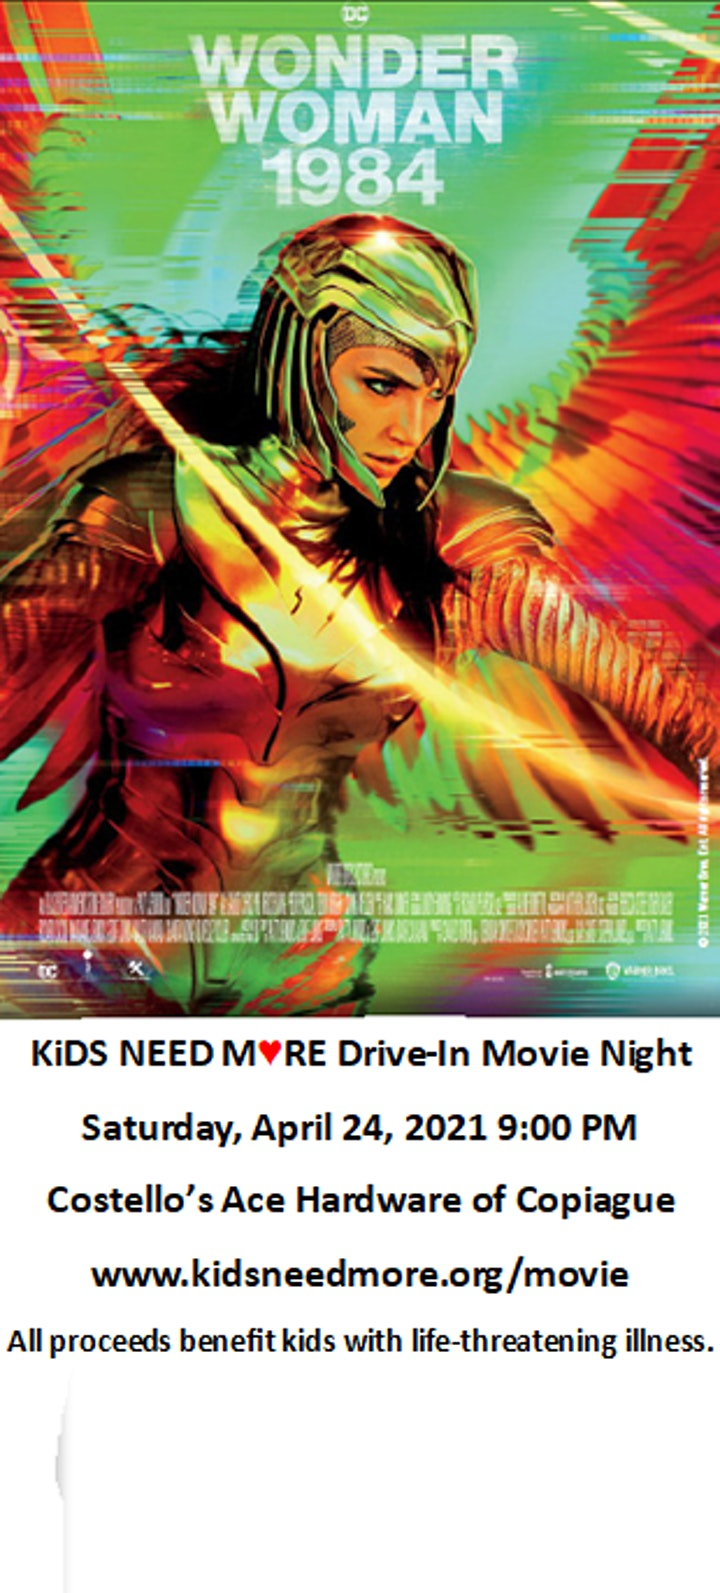 KiDS NEED MoRE DRiVE-iN MoViE NiGHT Series image